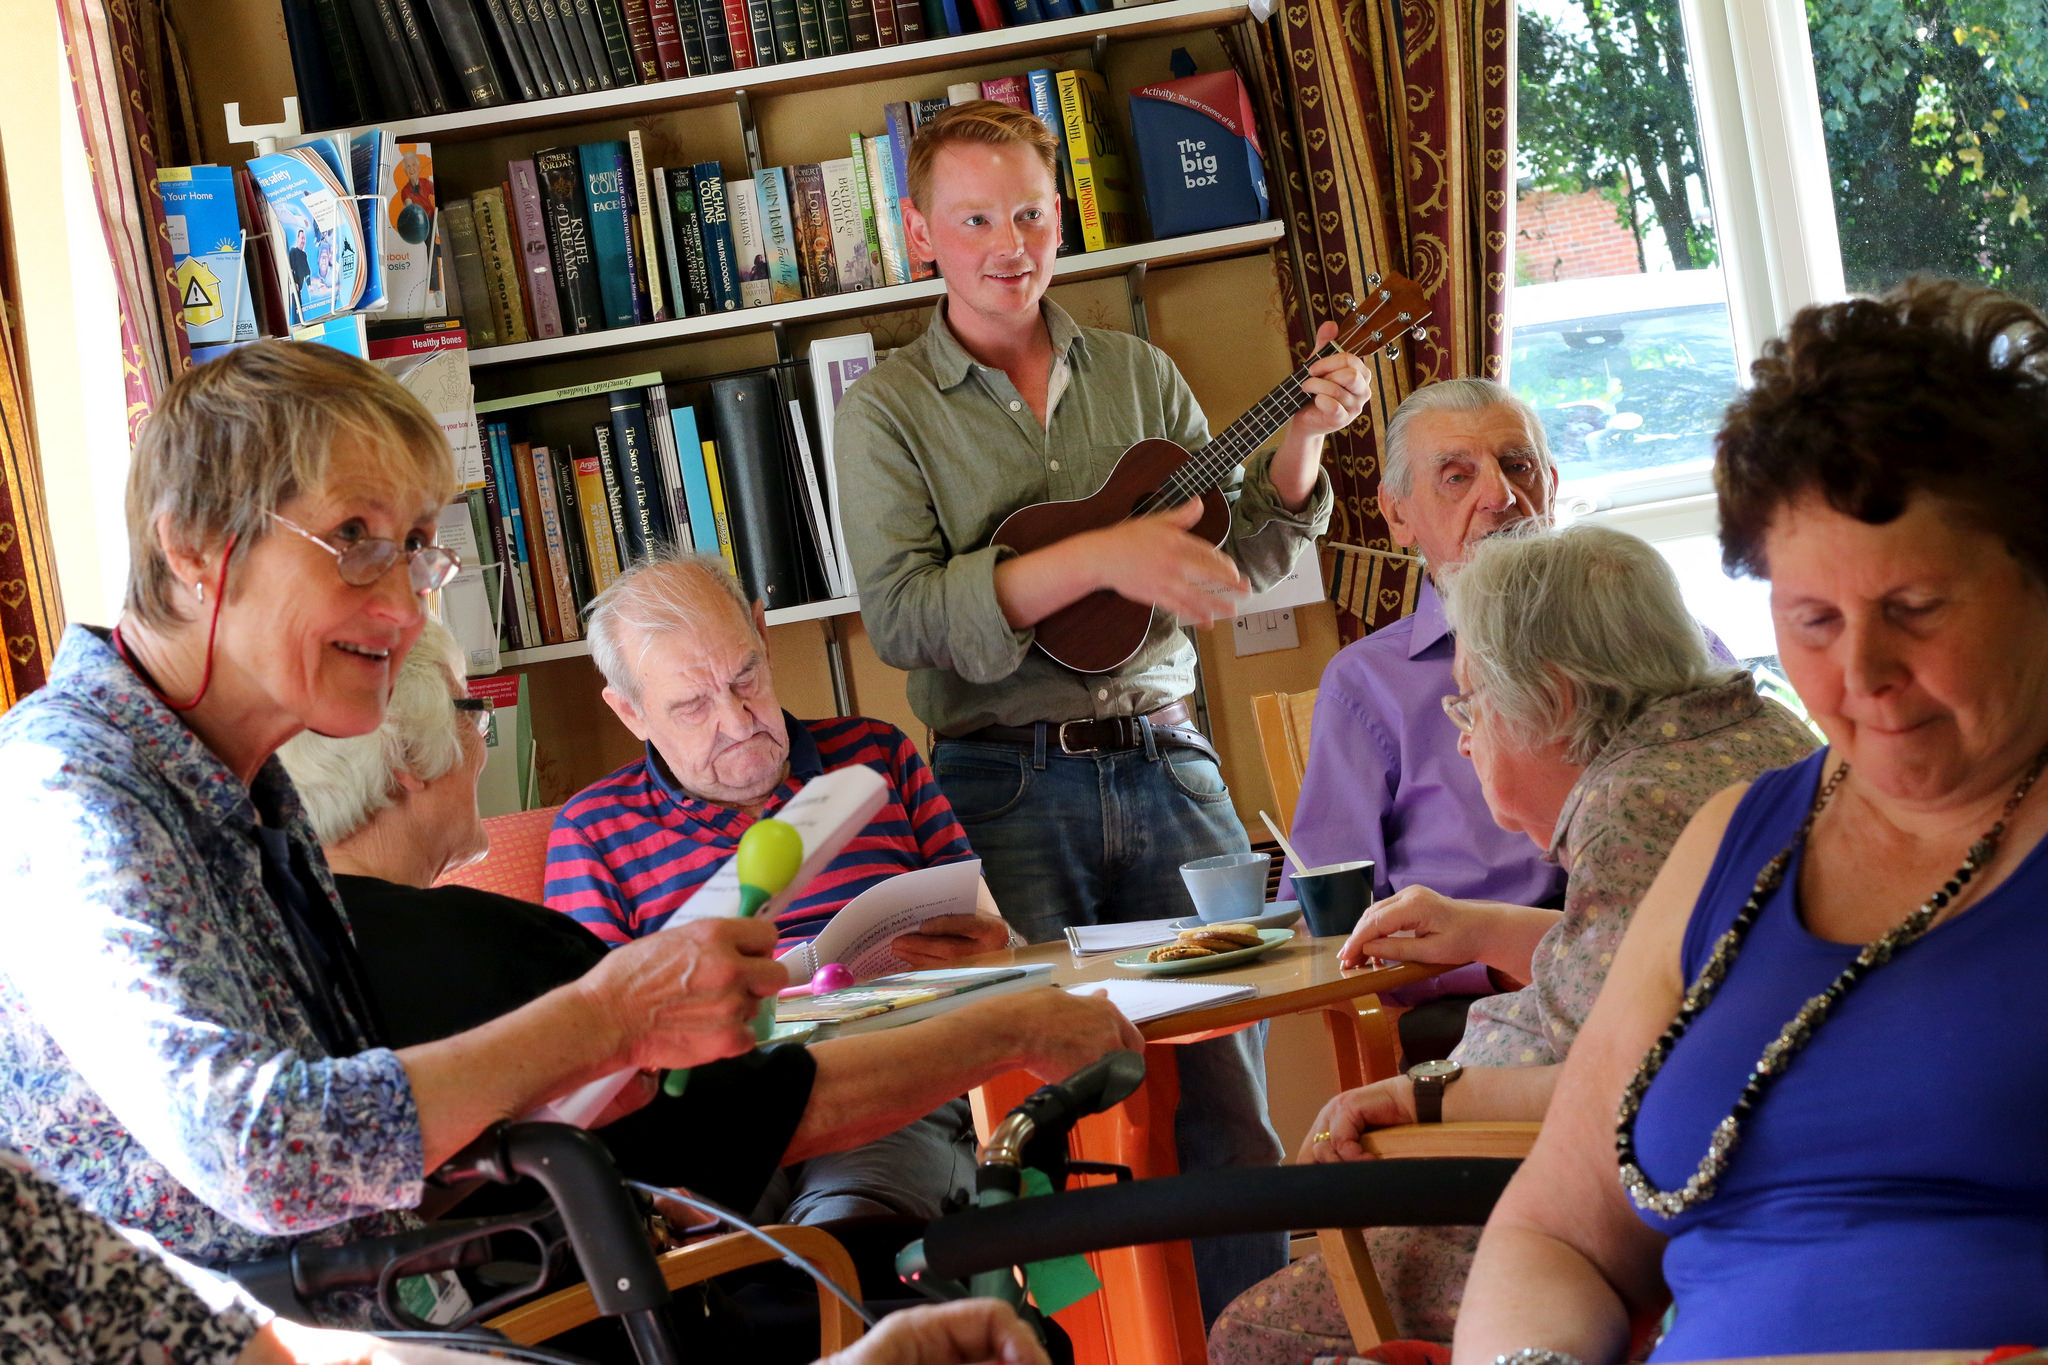 Members of the Royal Voluntary Service taking part in a singing and ukulele session with Sage Gateshead's Silver Lining programme and bait.